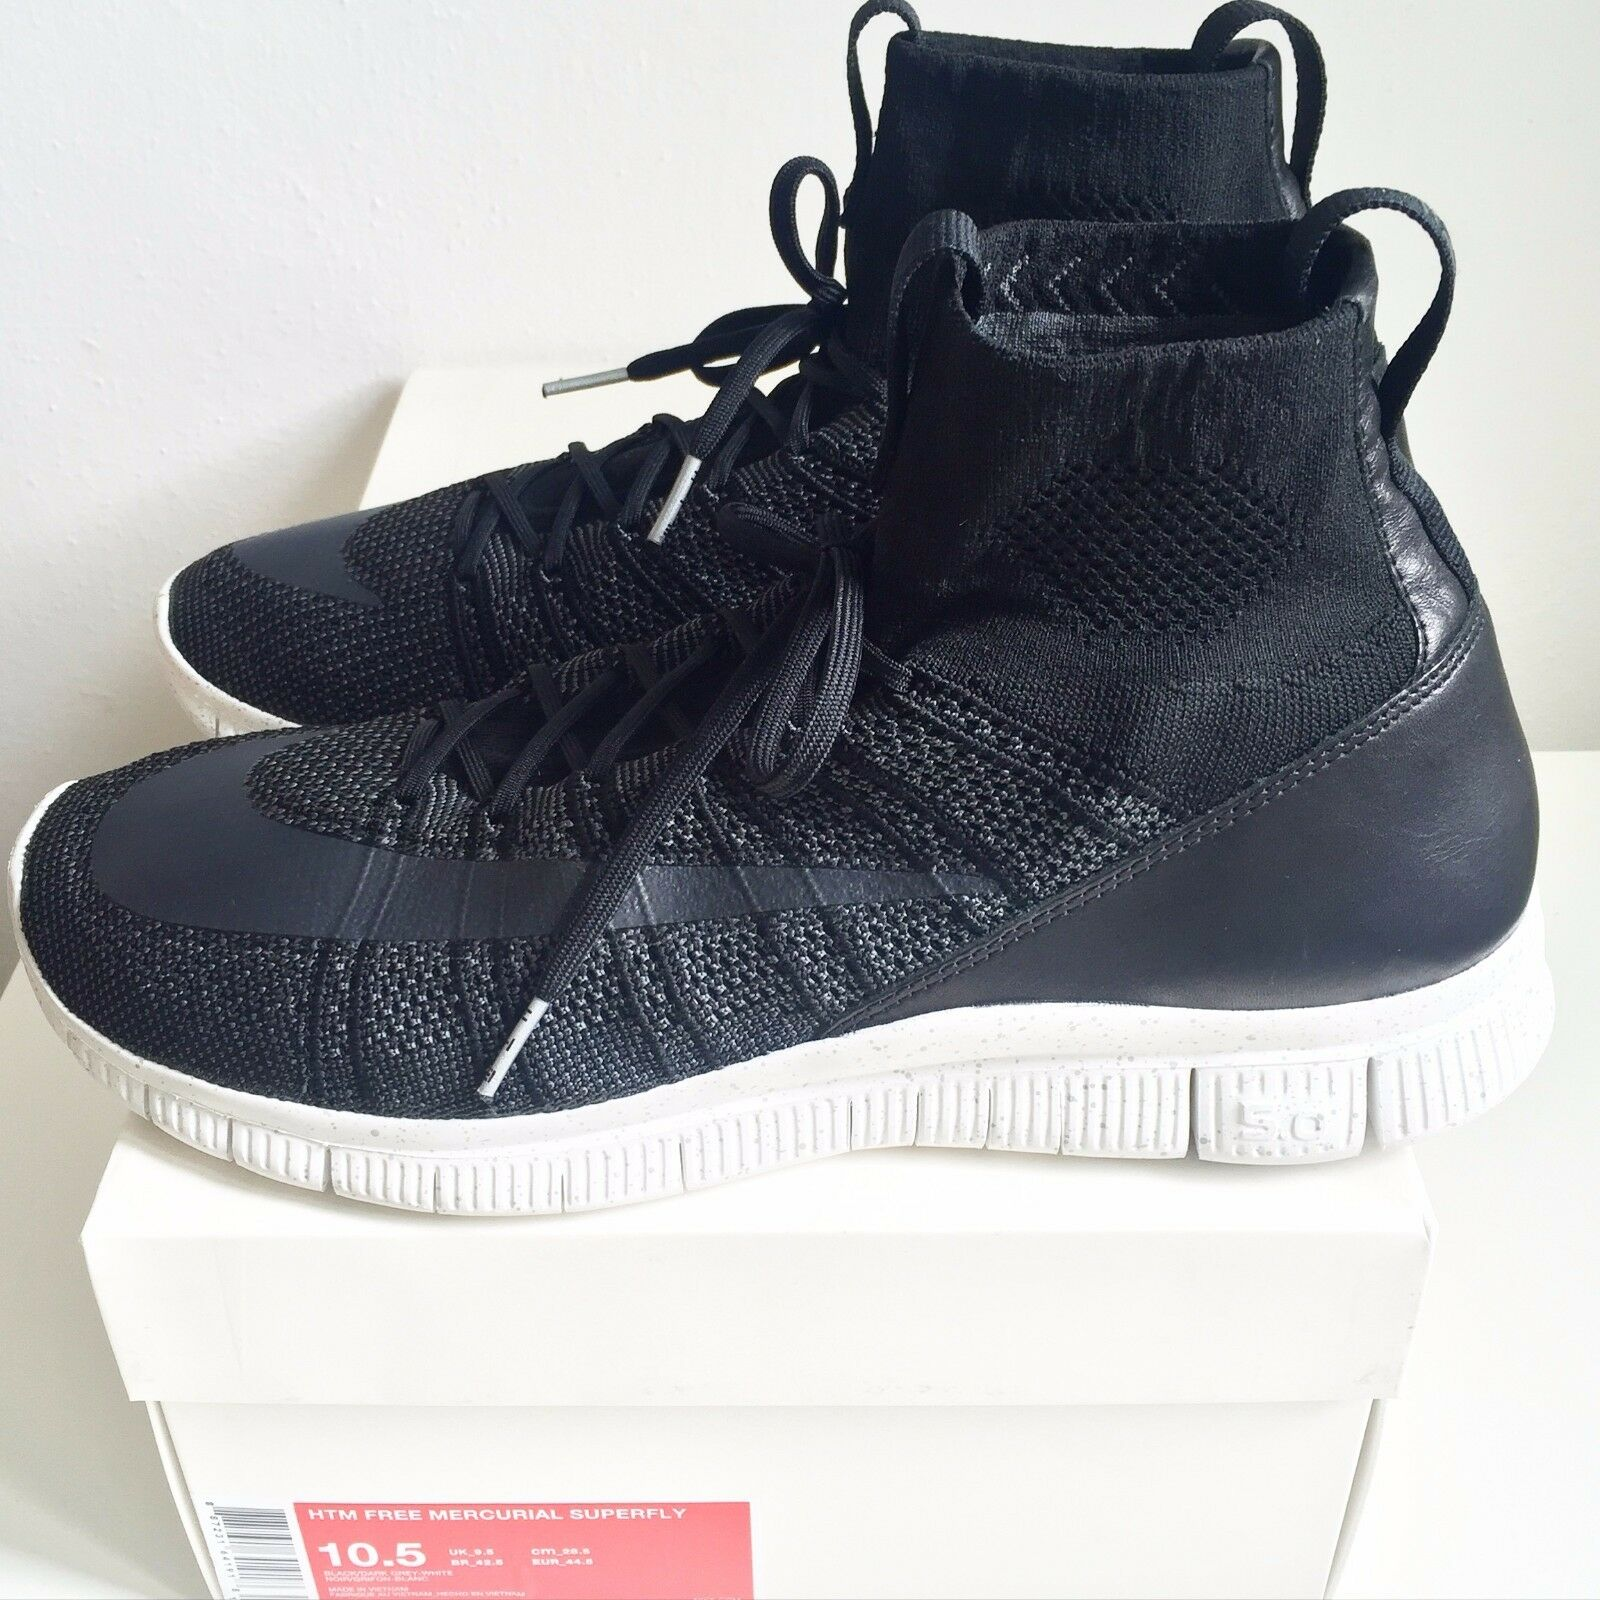 Nike Free Mercurial Mercurial Mercurial Superfly HTM Noir 1 of 500 US10.5 UK9.5 EUR44.5 CM28.5 d2f005